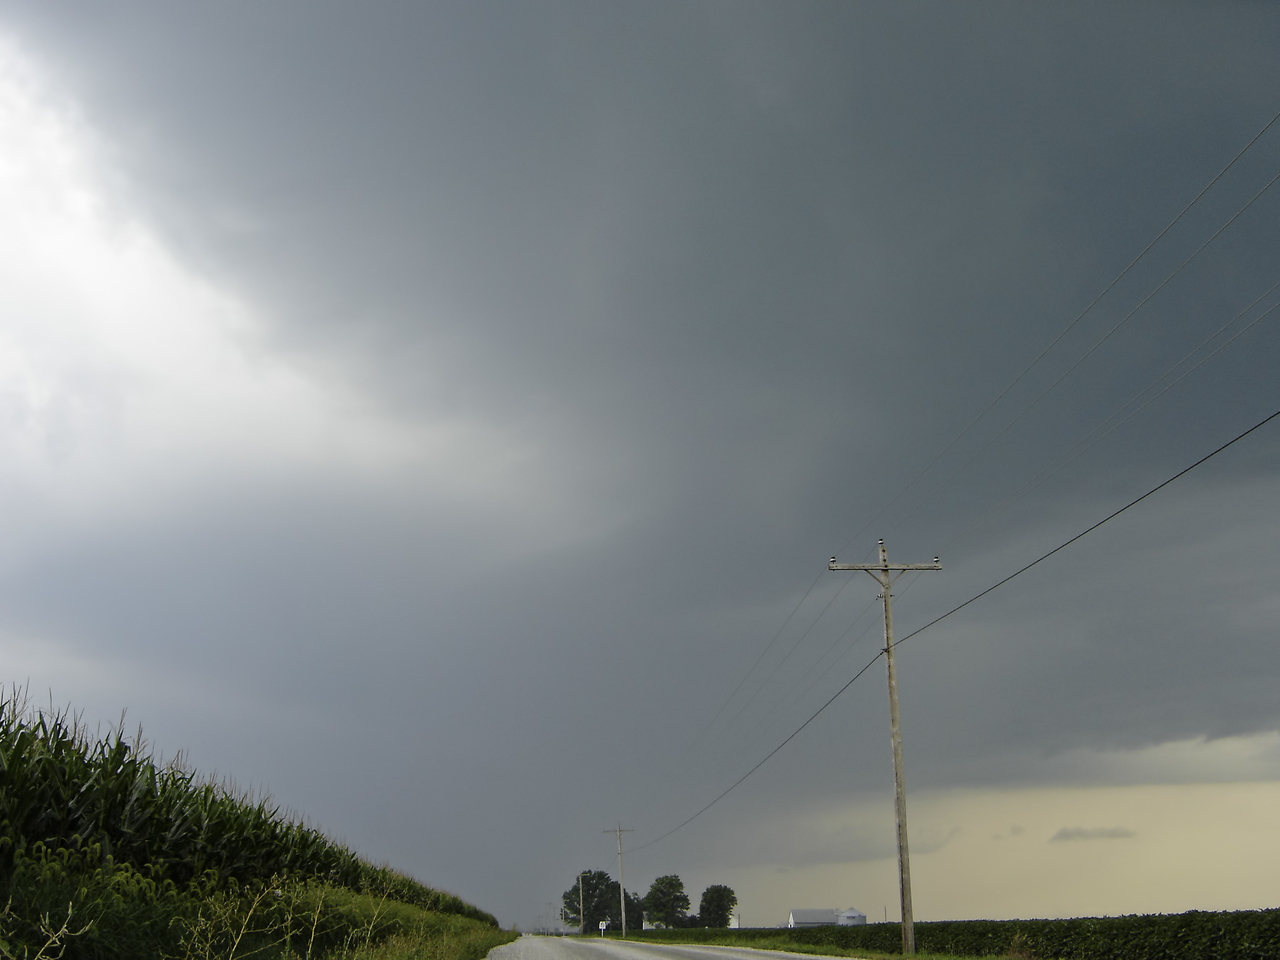 July 26 - W Macon County IL (severe thunderstorm approaching)